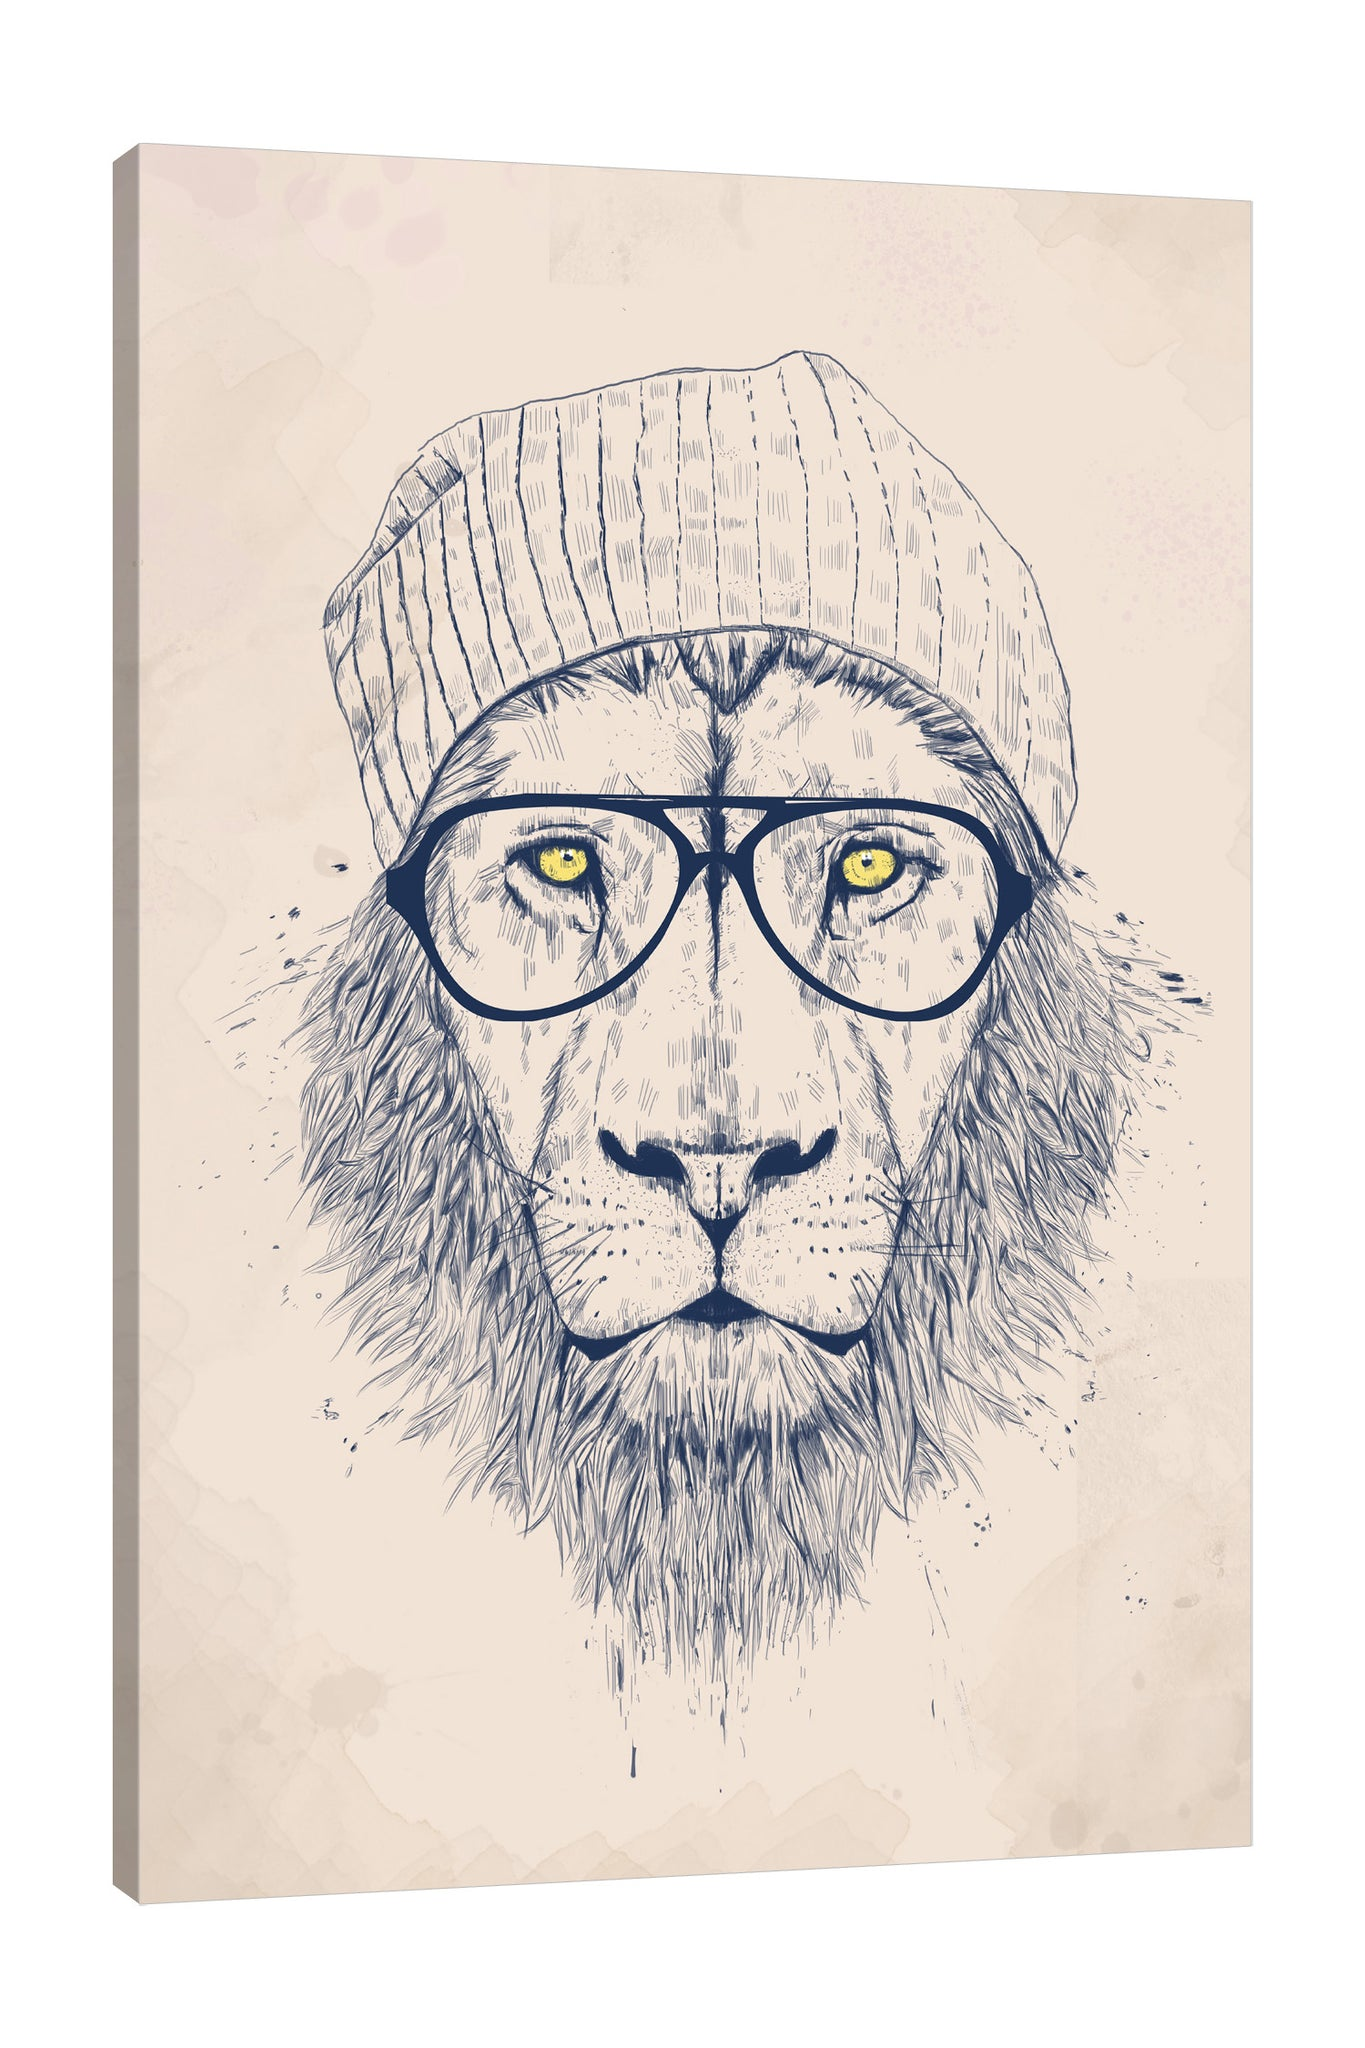 Balazs-Solti,Modern & Contemporary,Animals,Fashion,Entertainment,animals,animal,lion,lions,hat,eyeglass,eyeglasses,brown,beige,drawing,Mist Gray,White,Baby Blue,Gray,Charcoal Gray,Red,Black